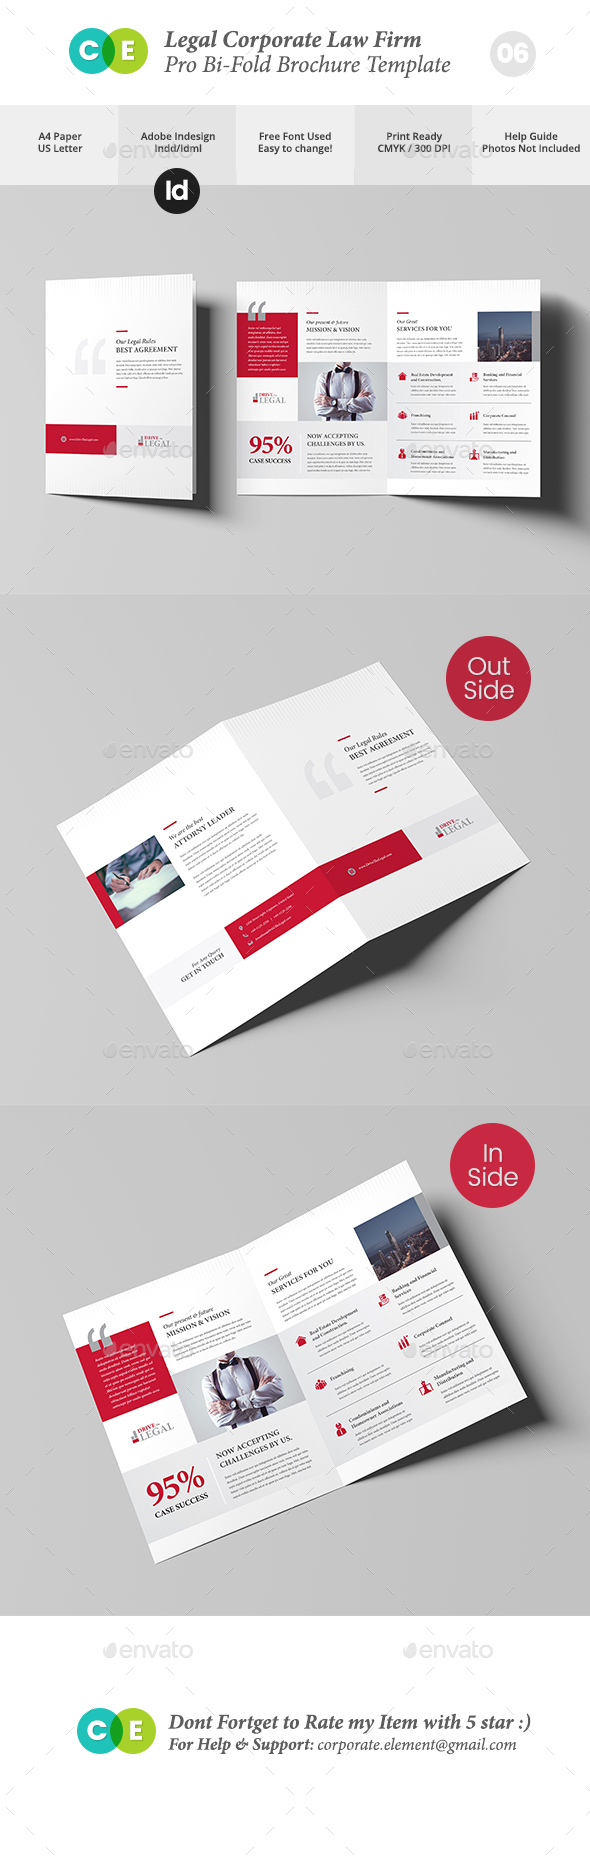 Legal Corporate Law Firm Business Bi-Fold Brochure V06 - Brochures Print Templates